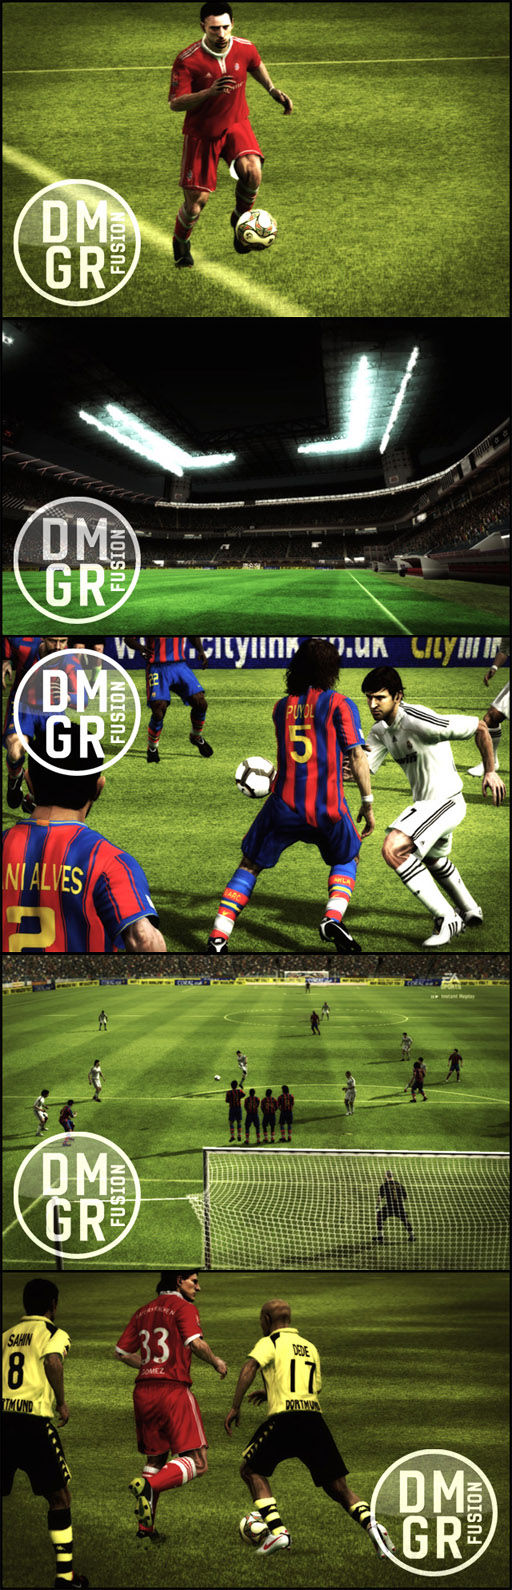 Duong's Match Graphics Replacement Fusion 10 beta v0.5 for FIFA Soccer 10